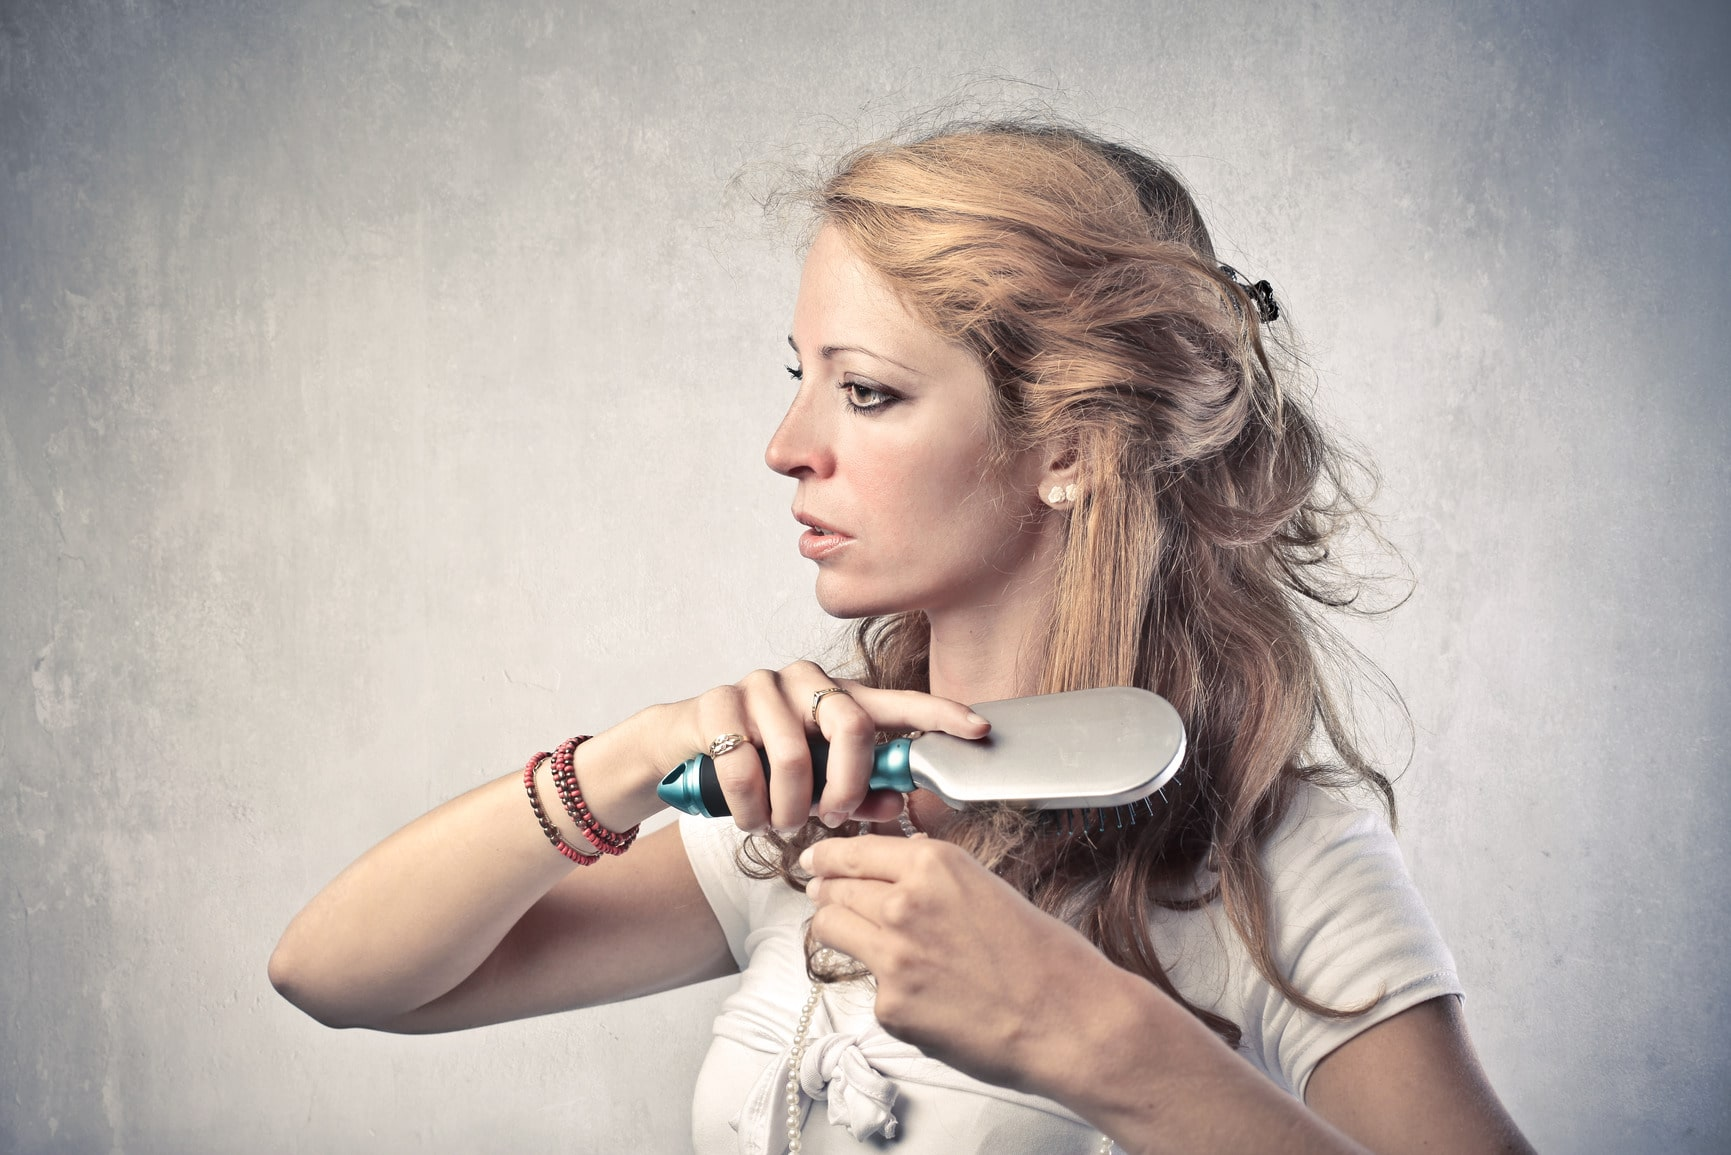 Sick And Tired Of Doing Hair Care The Old Way?